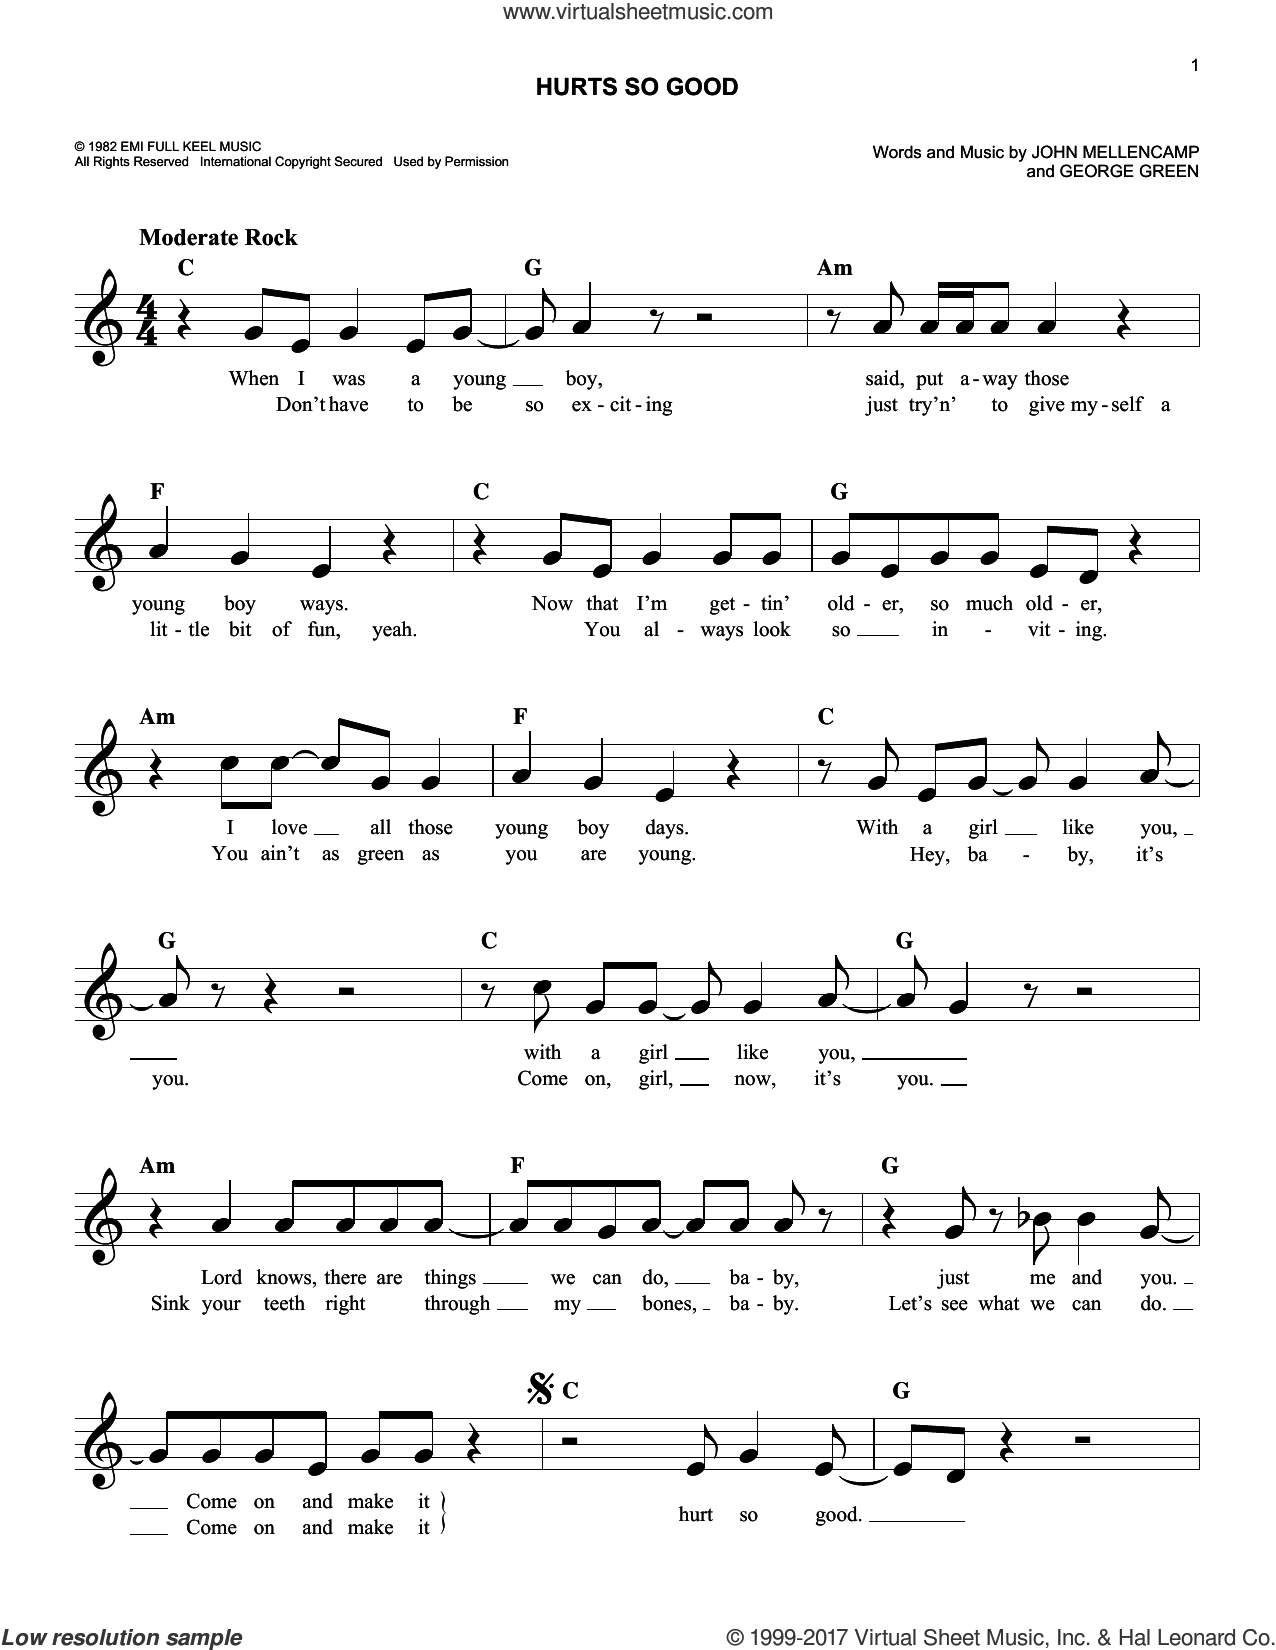 Hurts So Good sheet music for voice and other instruments (fake book) by John Mellencamp and George Green, intermediate skill level